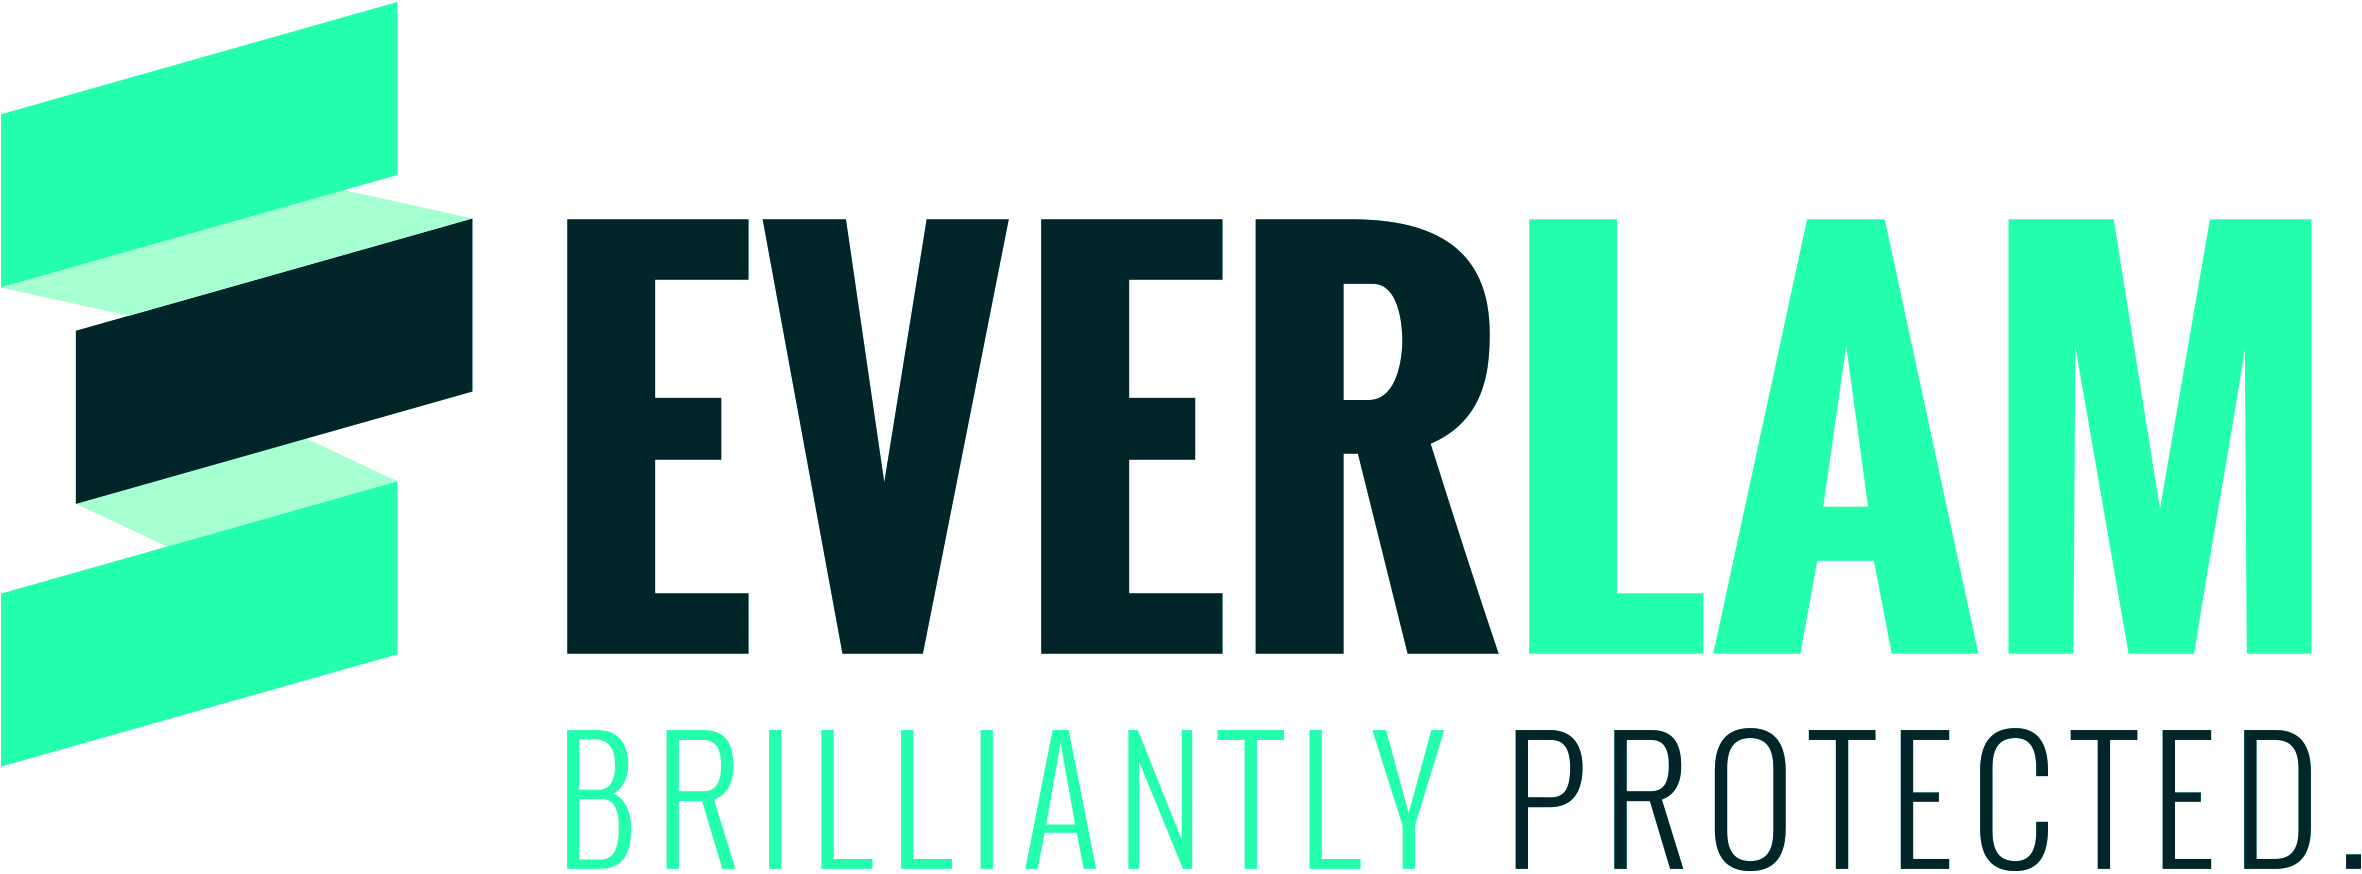 Everlam-logo-on-white-tagline_big_CMYK.jpg (1020 KB)